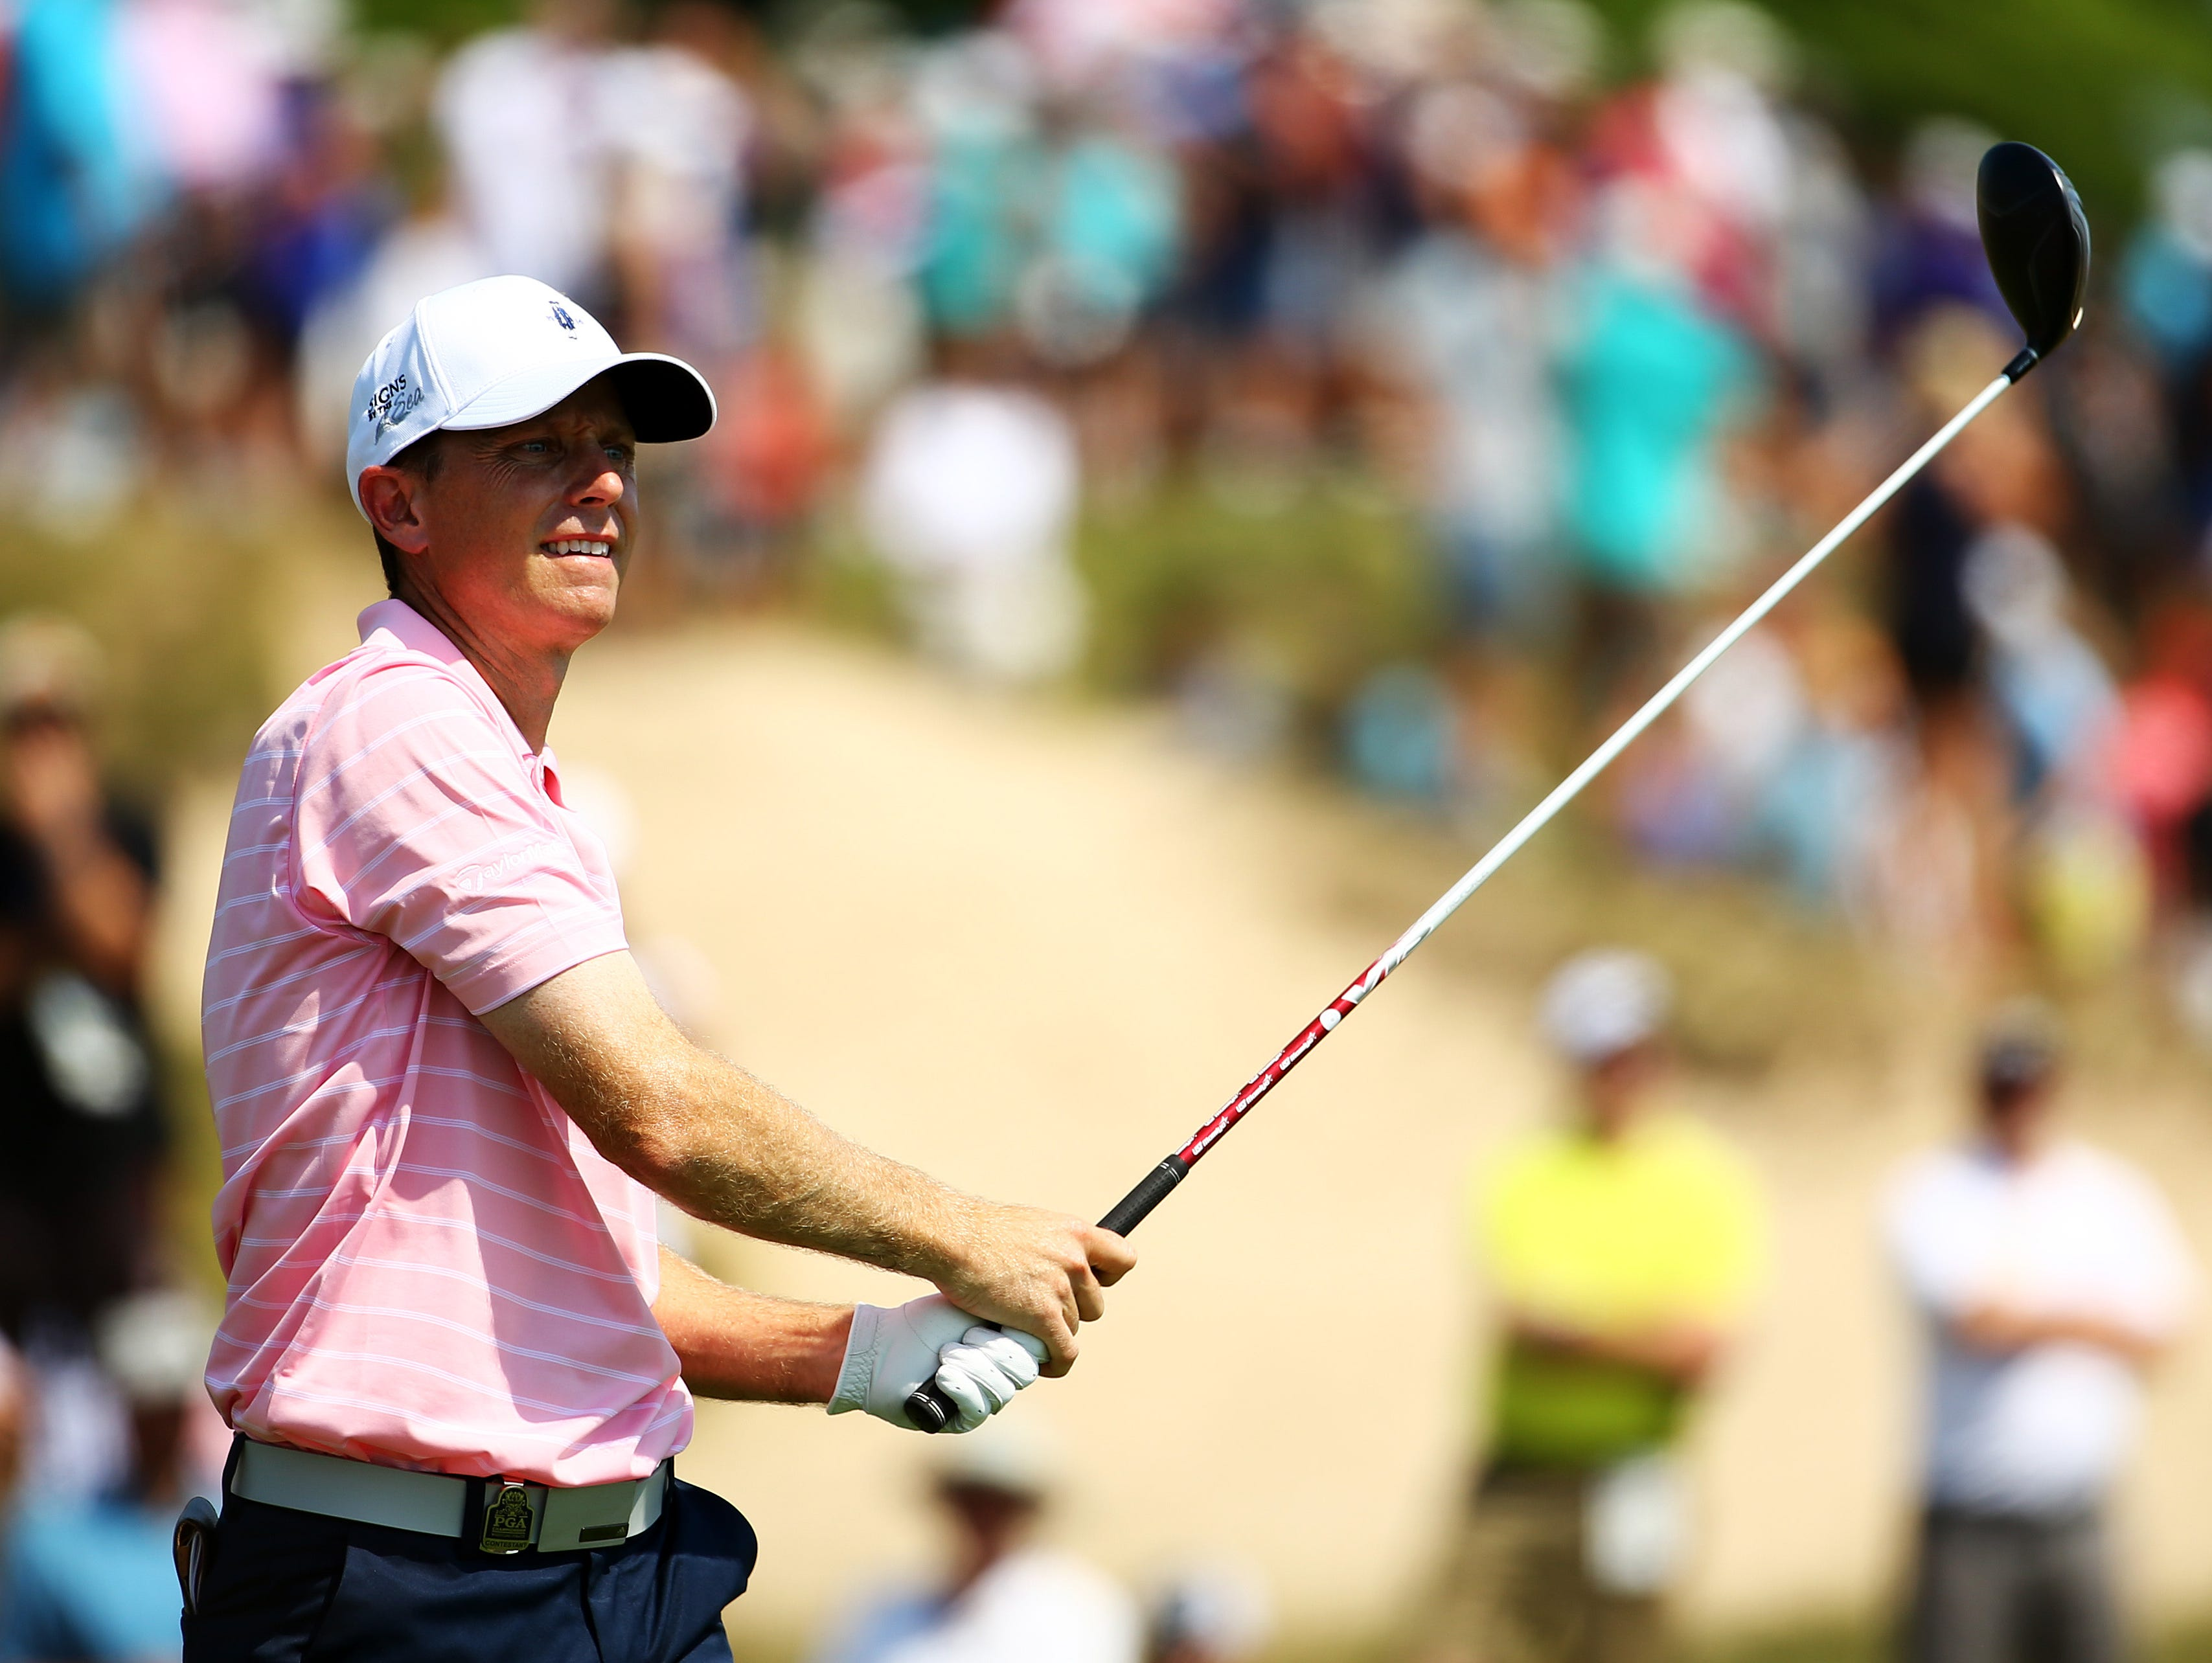 Brian Gaffney, pictured here during the 2015 PGA Championship at Whistling Straits on August 14, 2015 in Sheboygan, Wisconsin, is currently competing in the 98th PGA Championship at Baltusrol Golf Club in Springfield, New Jersey.